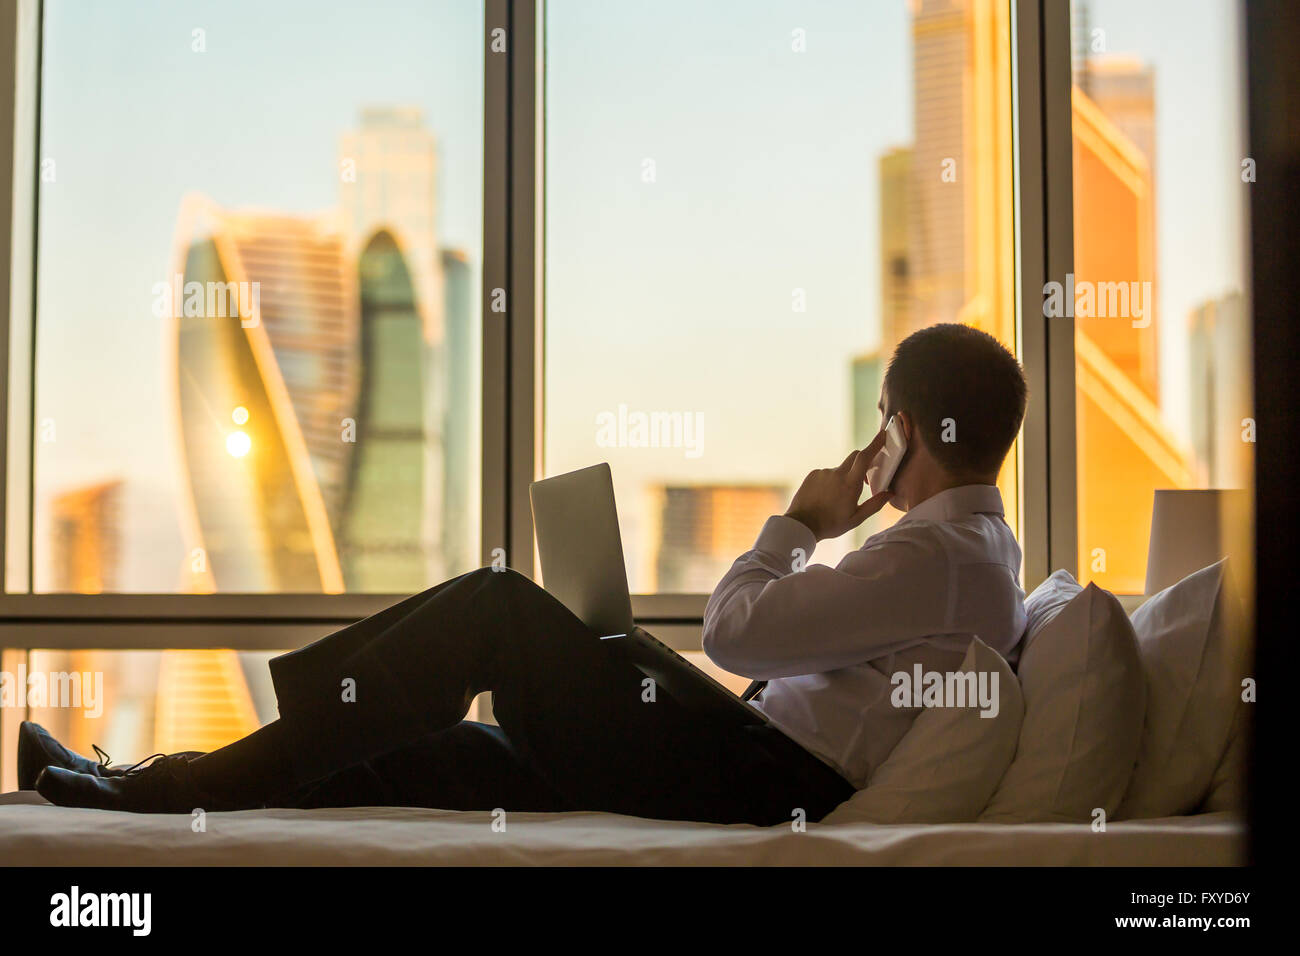 Businessperson working at home or in trip. Handsome young businessman sitting on bed with laptop and making call - Stock Image